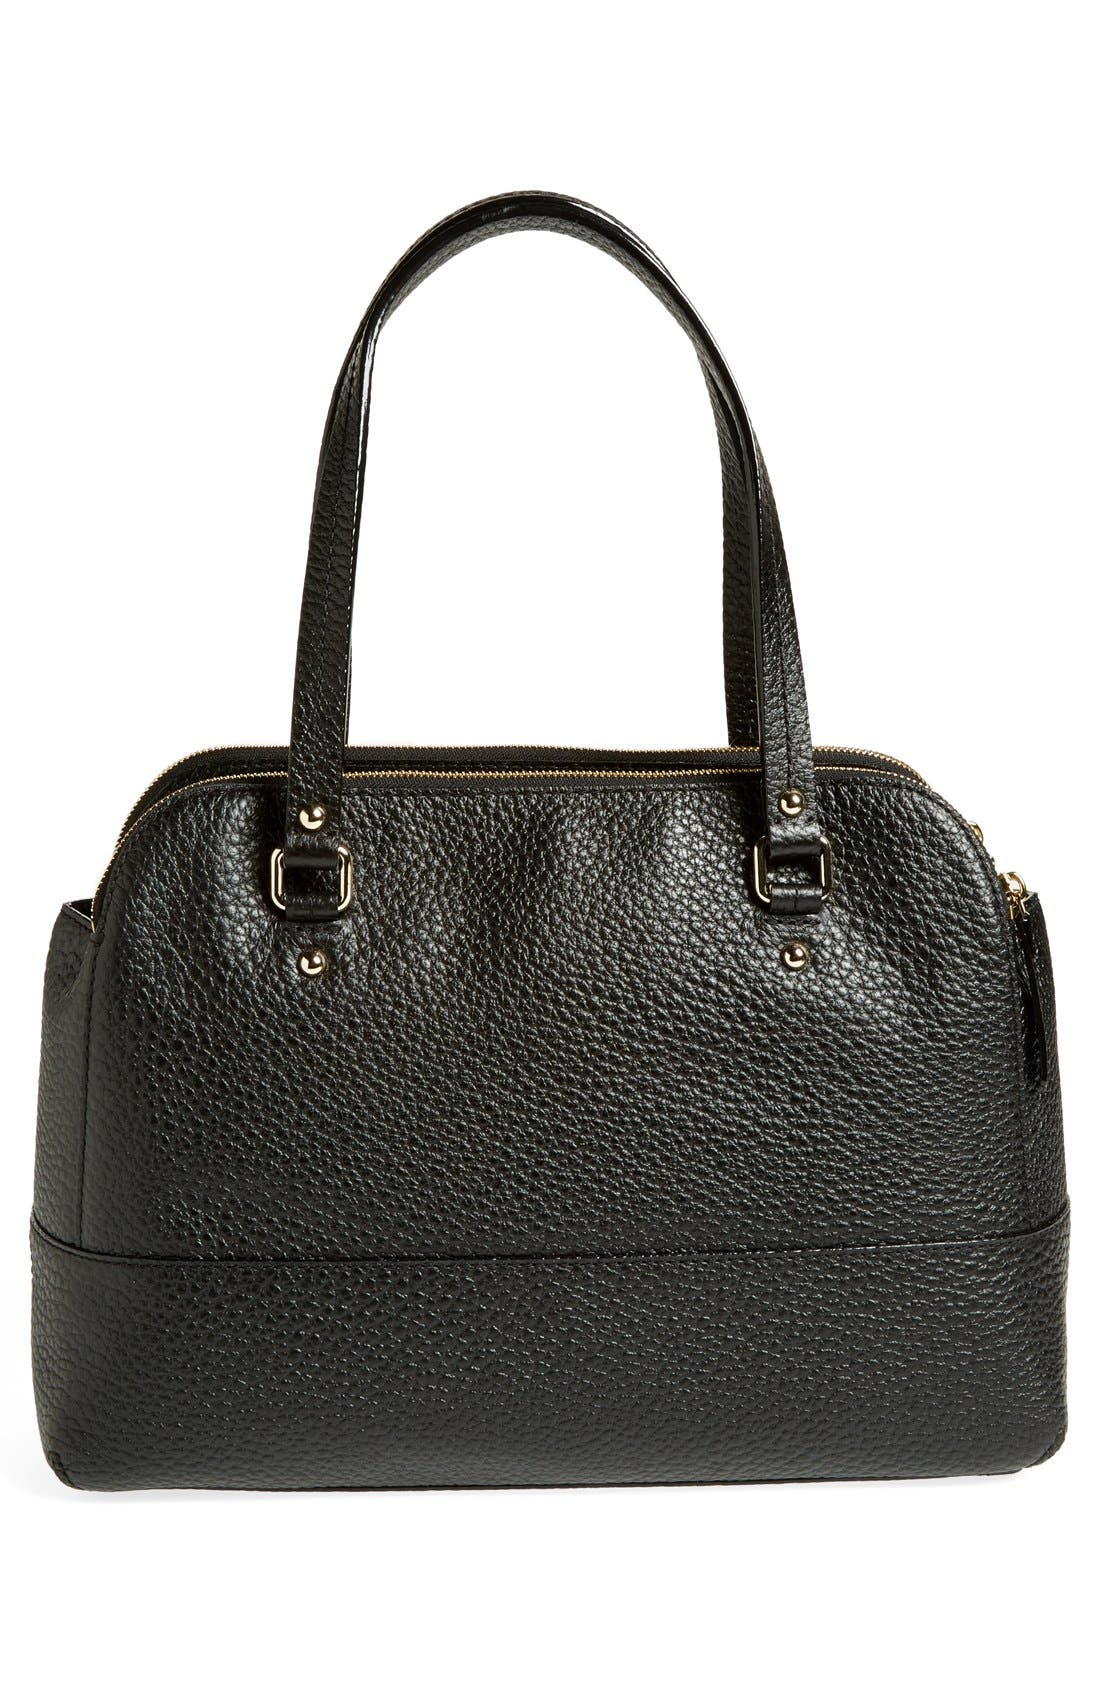 'grove court - lainey' leather tote,                             Alternate thumbnail 3, color,                             001